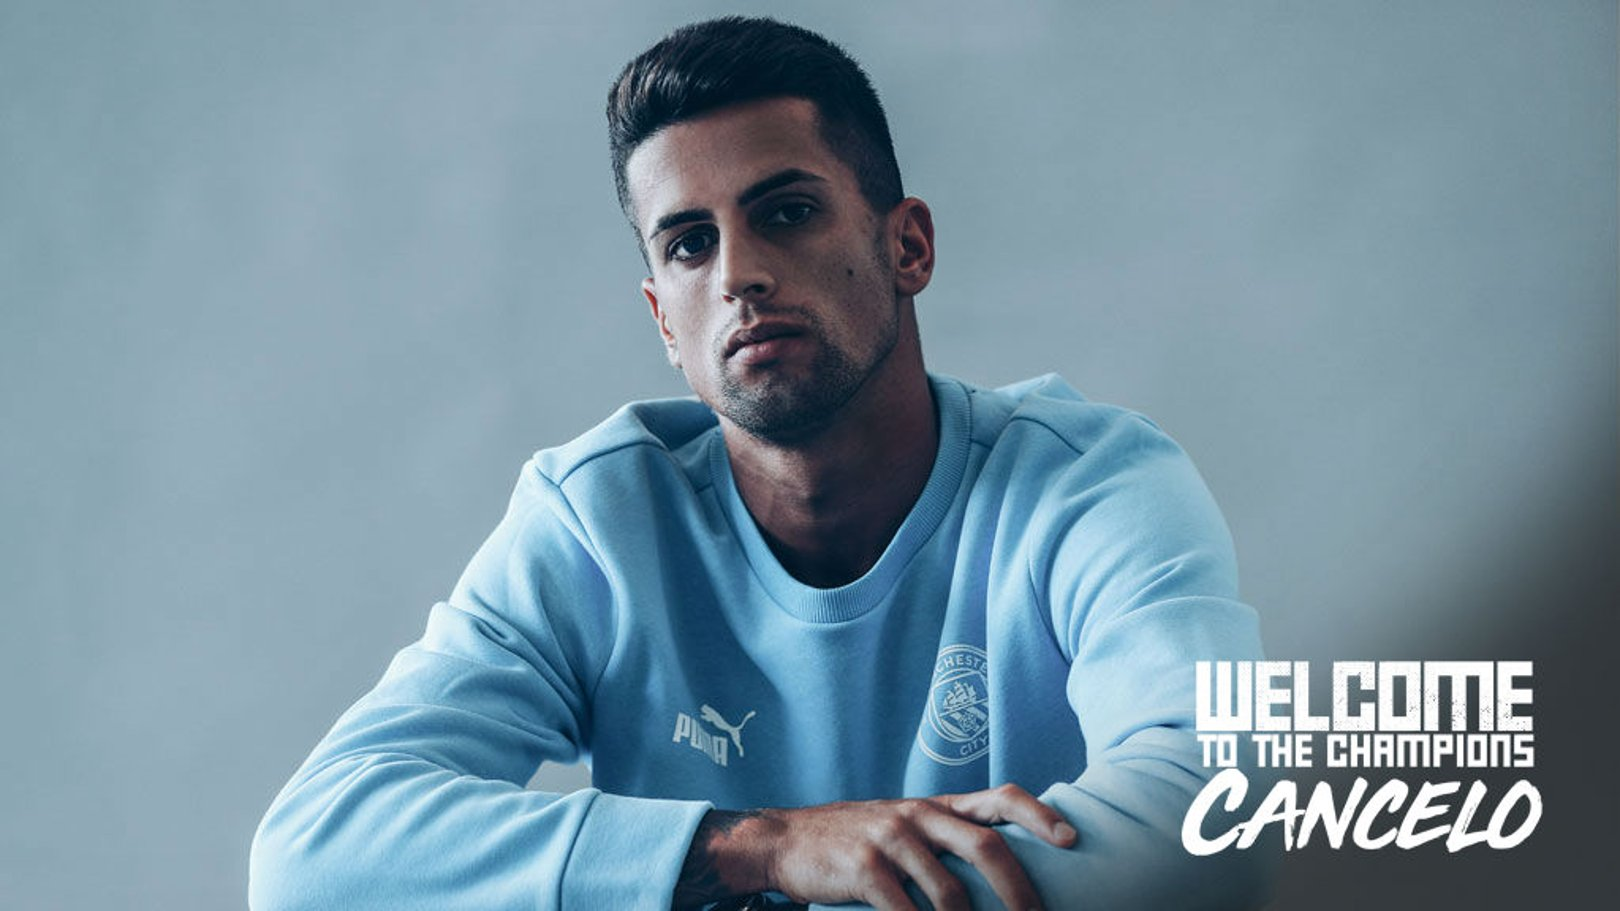 DONE DEAL: Cancelo is officially a Man City player